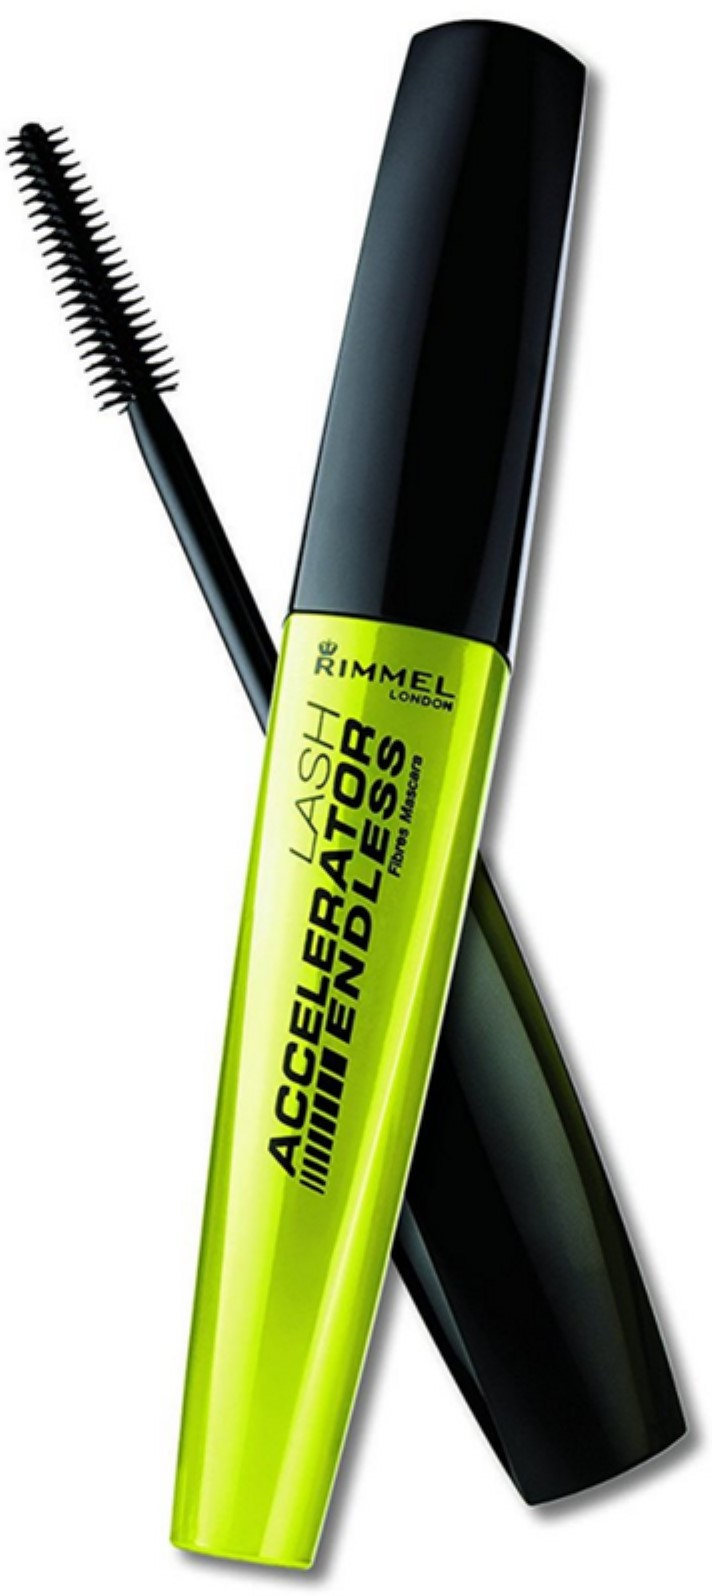 65d6517f282 Rimmel Lash Accelerator Mascara Endless, Extreme Black 0.33 oz (Pack of 4)  - Walmart.com